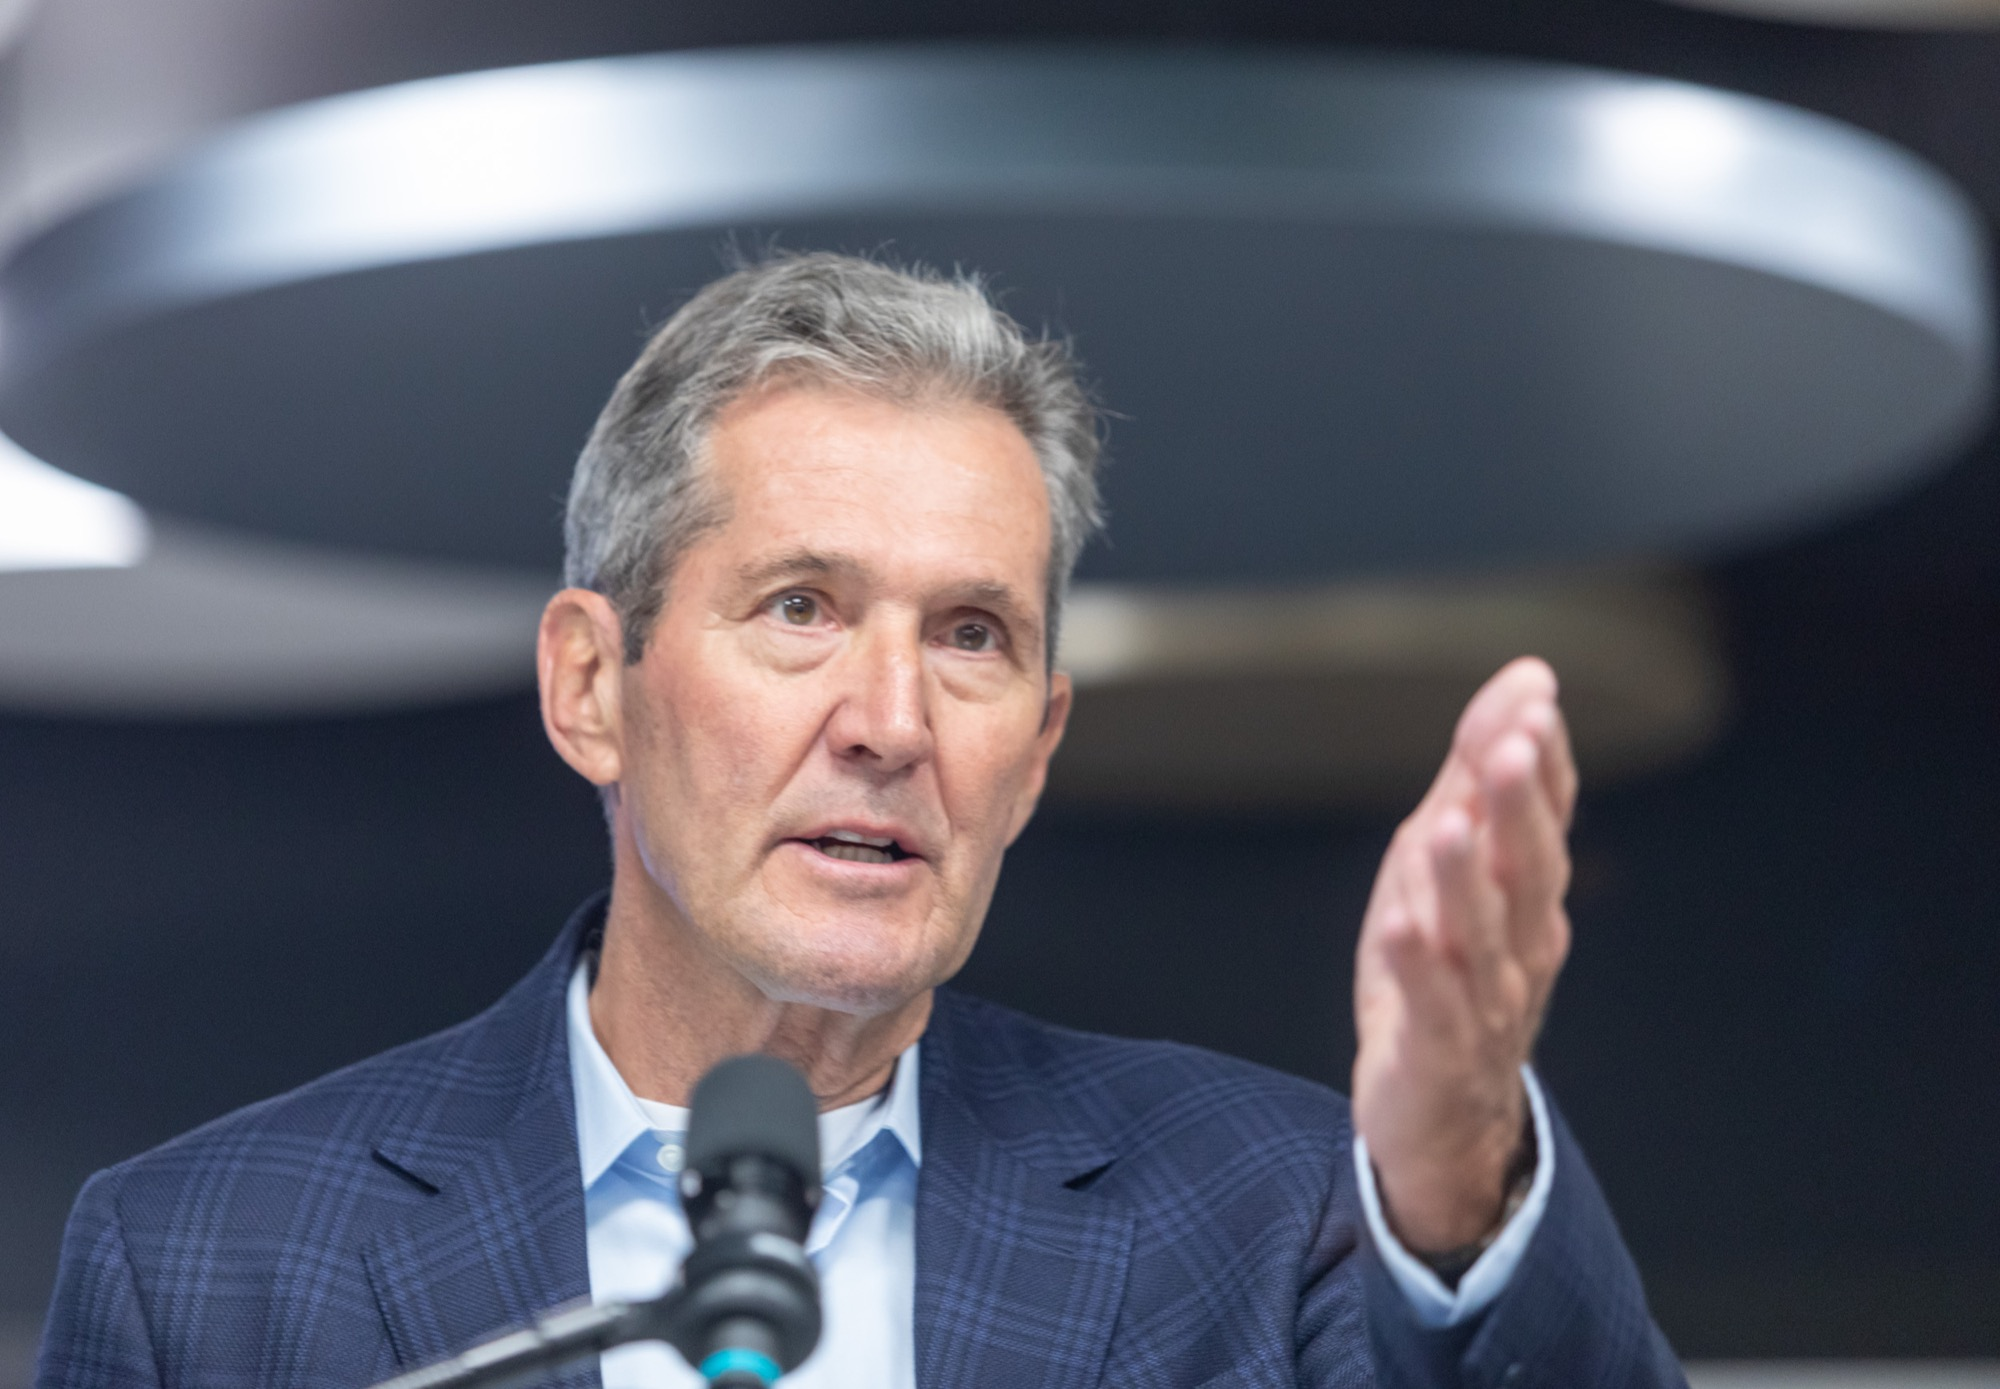 """SASHA SEFTER / WINNIPEG FREE PRESS FILES</p><p>""""At some point, Manitobans are going to retire me, whether I like it or not, and that's what goes with politics,"""" Manitoba PC Party Leader Brian Pallister said.</p>"""